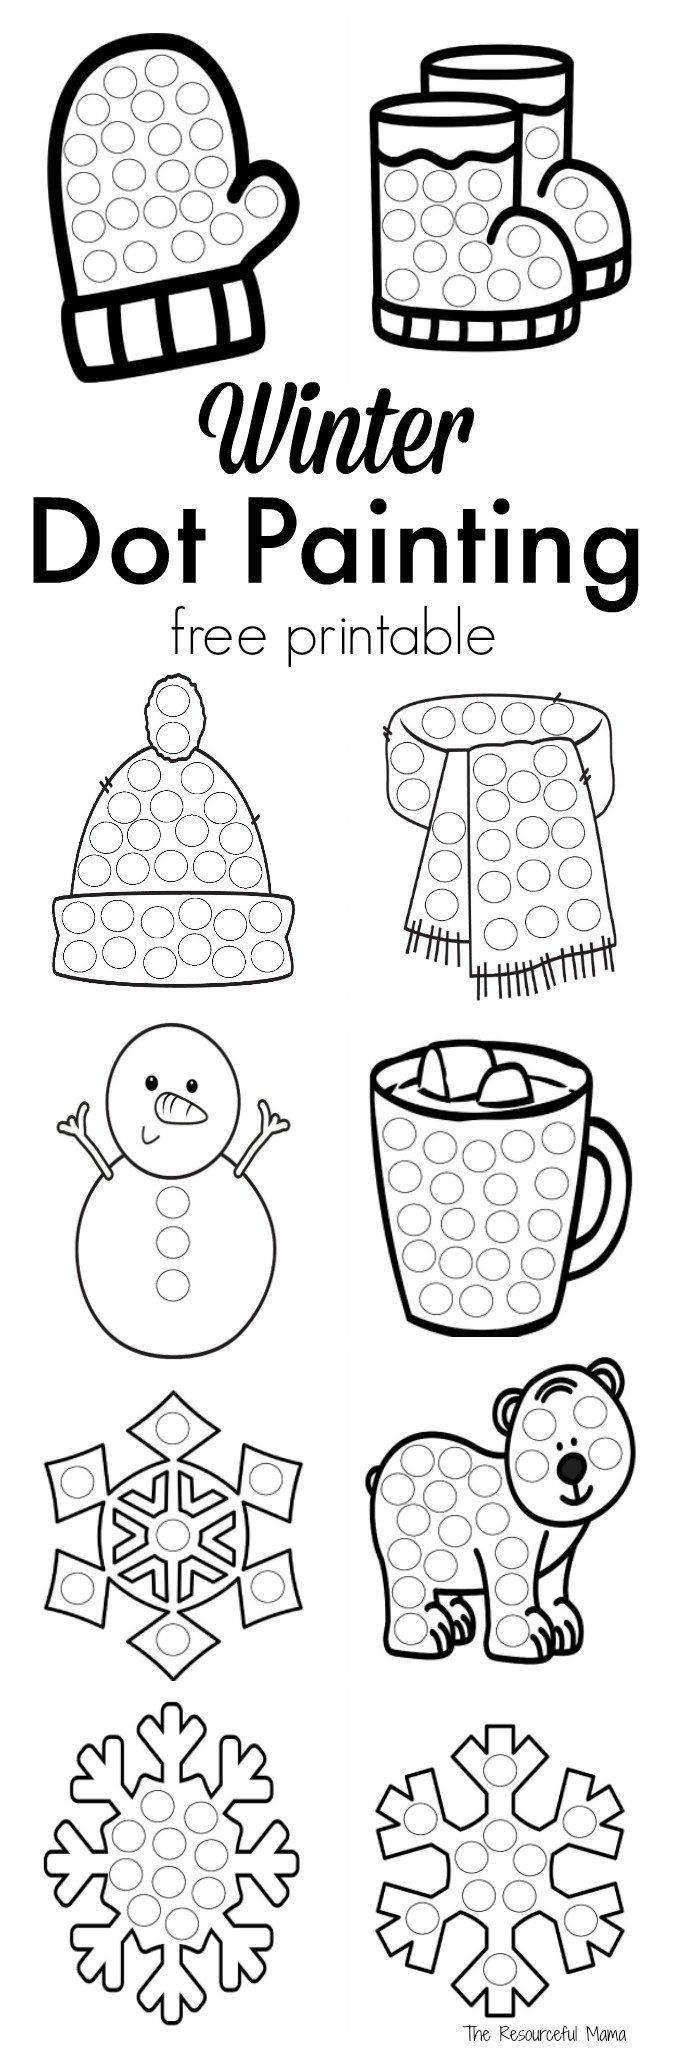 winter dot painting free printable early start boredom busters for kids preschool. Black Bedroom Furniture Sets. Home Design Ideas